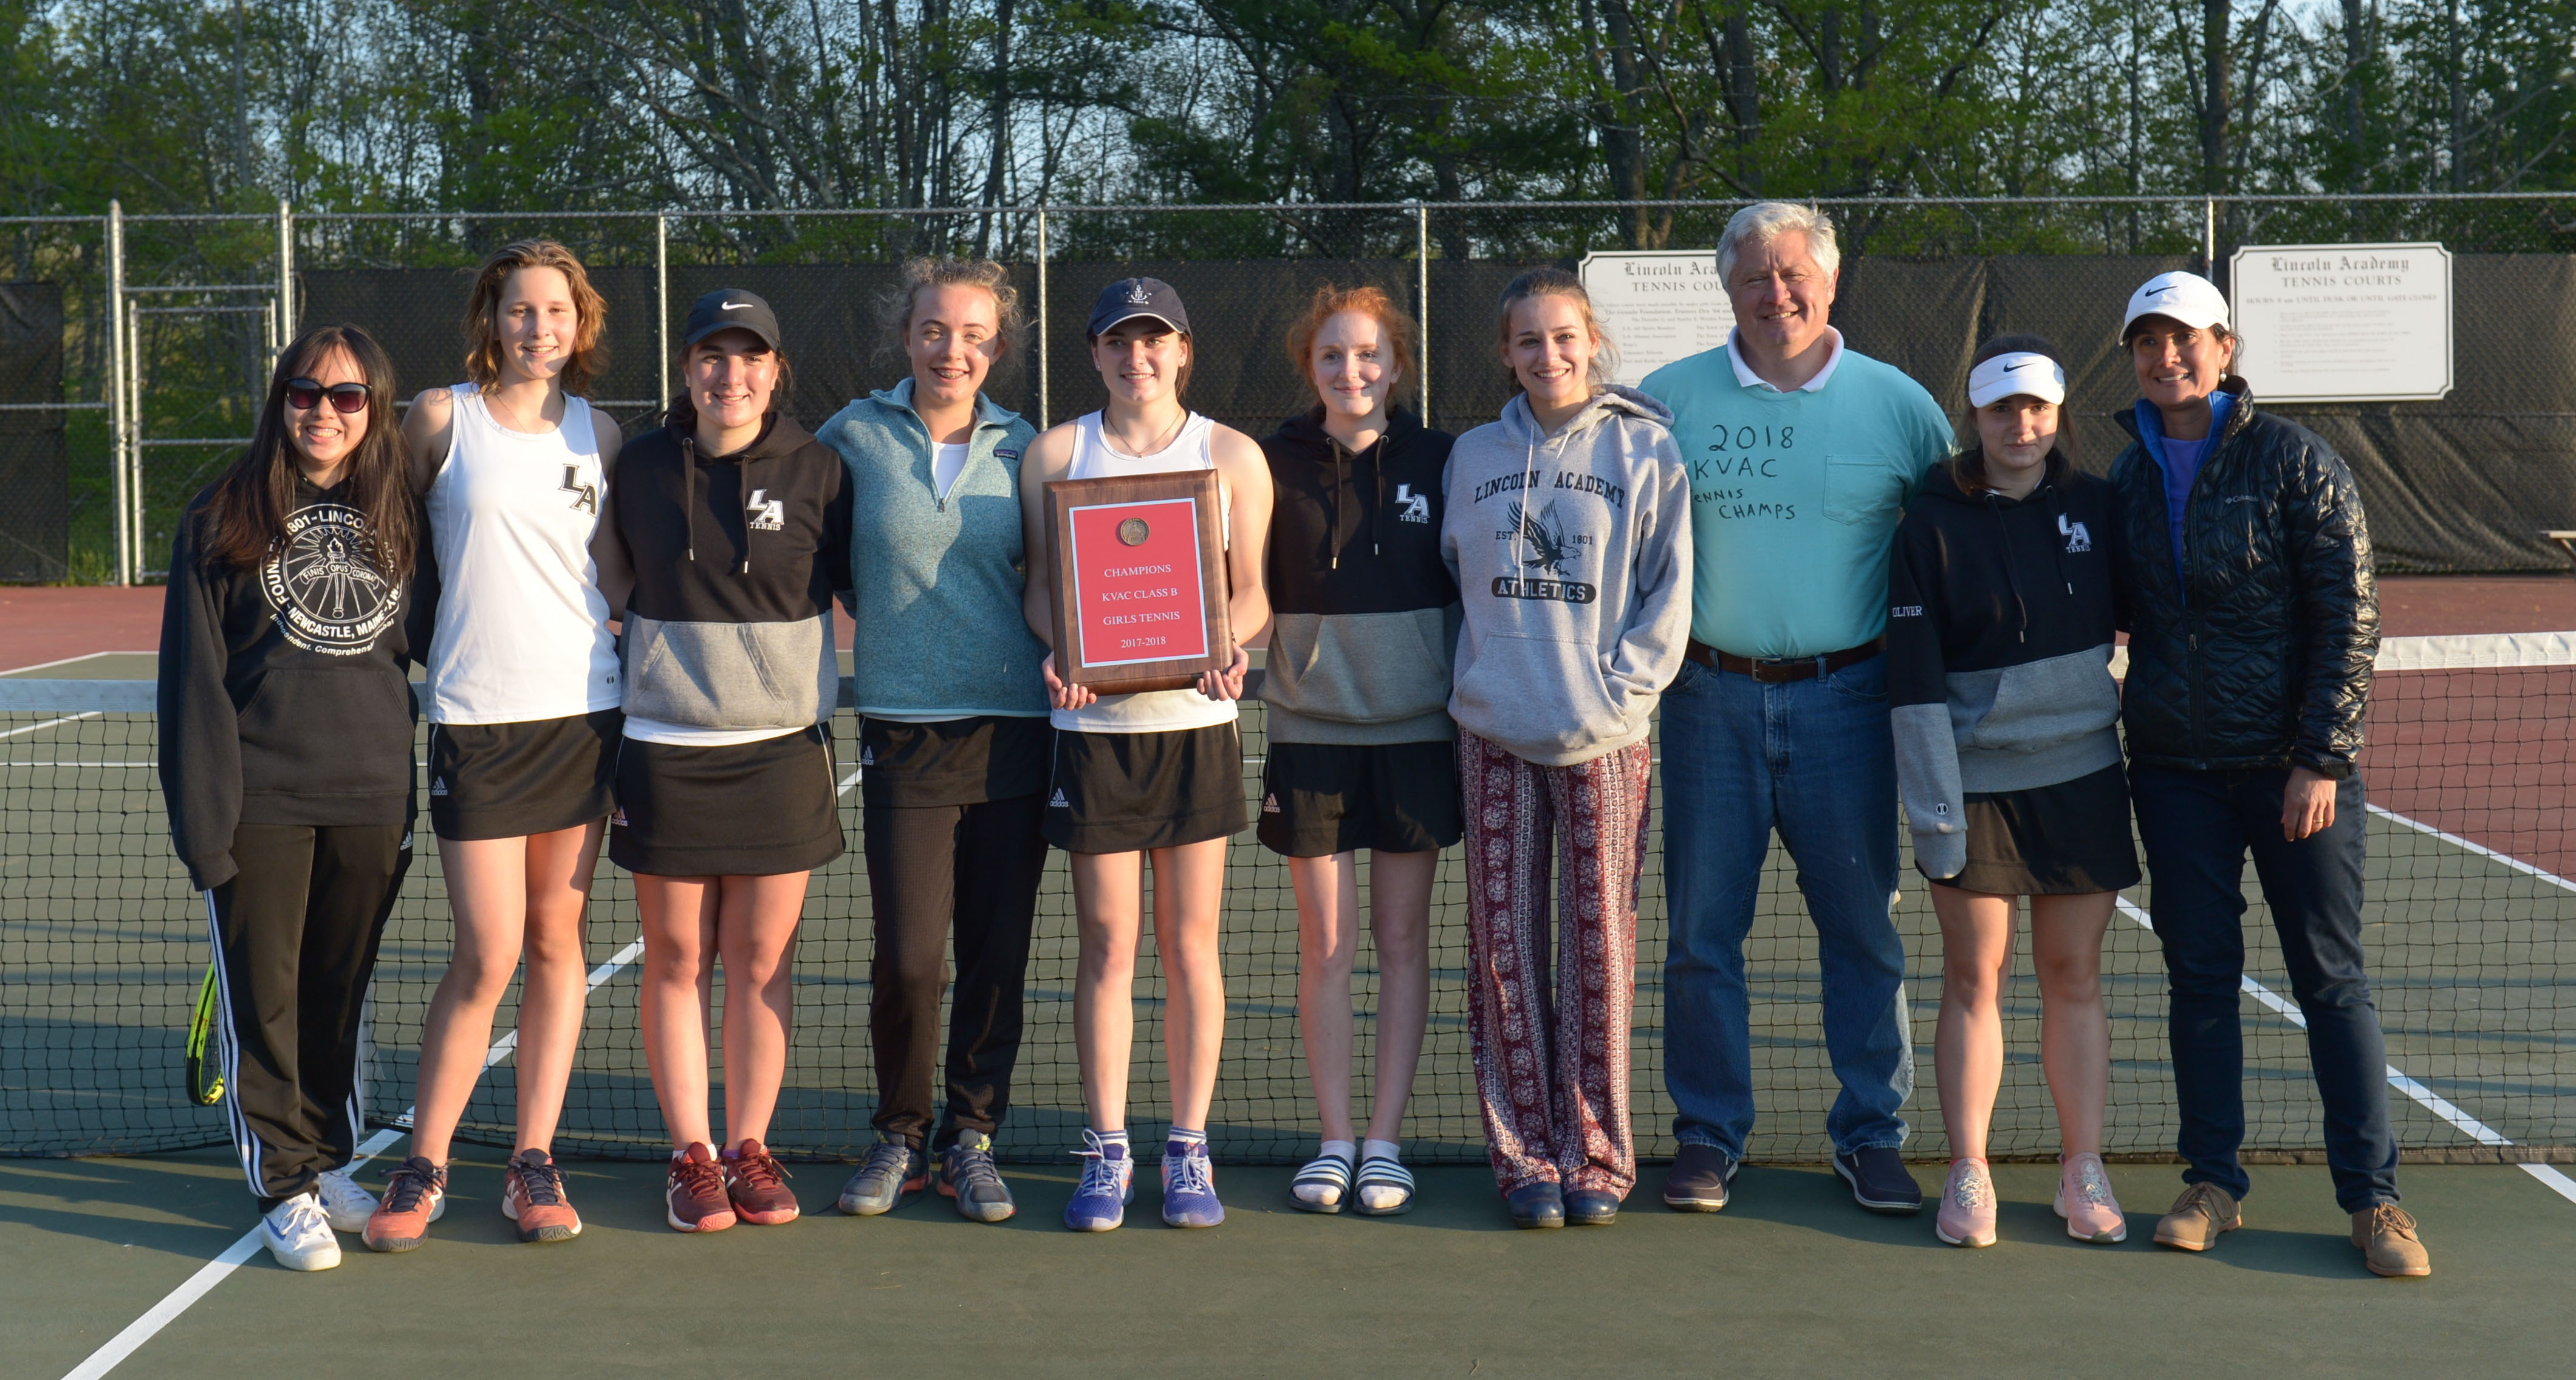 2018 KVAC Class B girls tennis champions, the Lincoln Academy Lady Eagles. Team members are (fromt left) Fiona Liang, Harmony Ingham, Sandra Thelander, Caitlin Cass, Emily Harris, Kate Peters, May Halm, coach Charlie Scimone, Anastasiya Oliver, and assistant coach Liliana Thelander. (Paula Roberts photo)